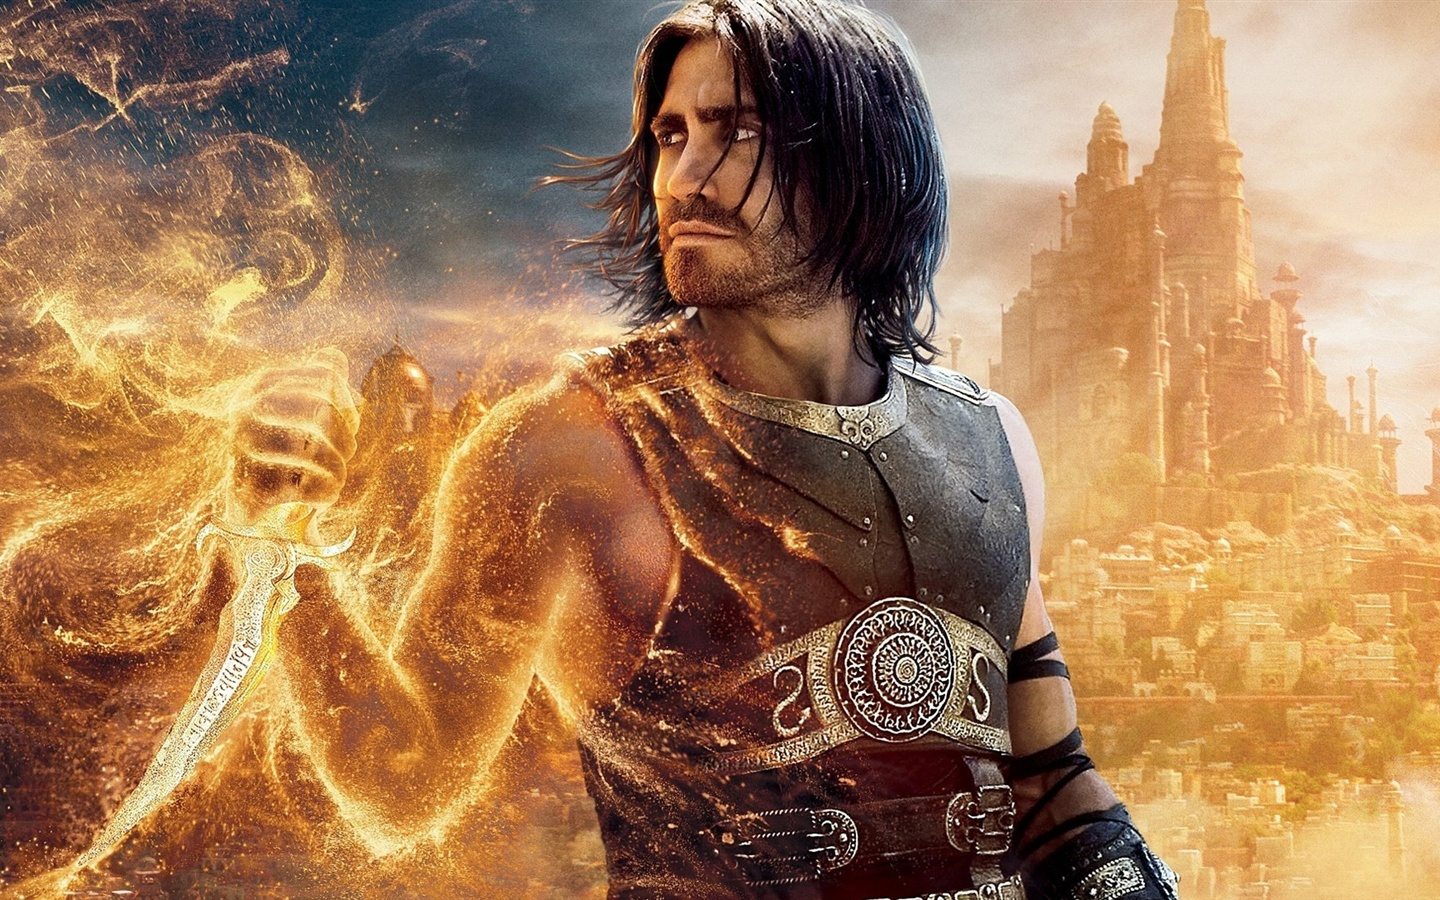 Download Wallpaper 1440x900 Prince of Persia: The ...